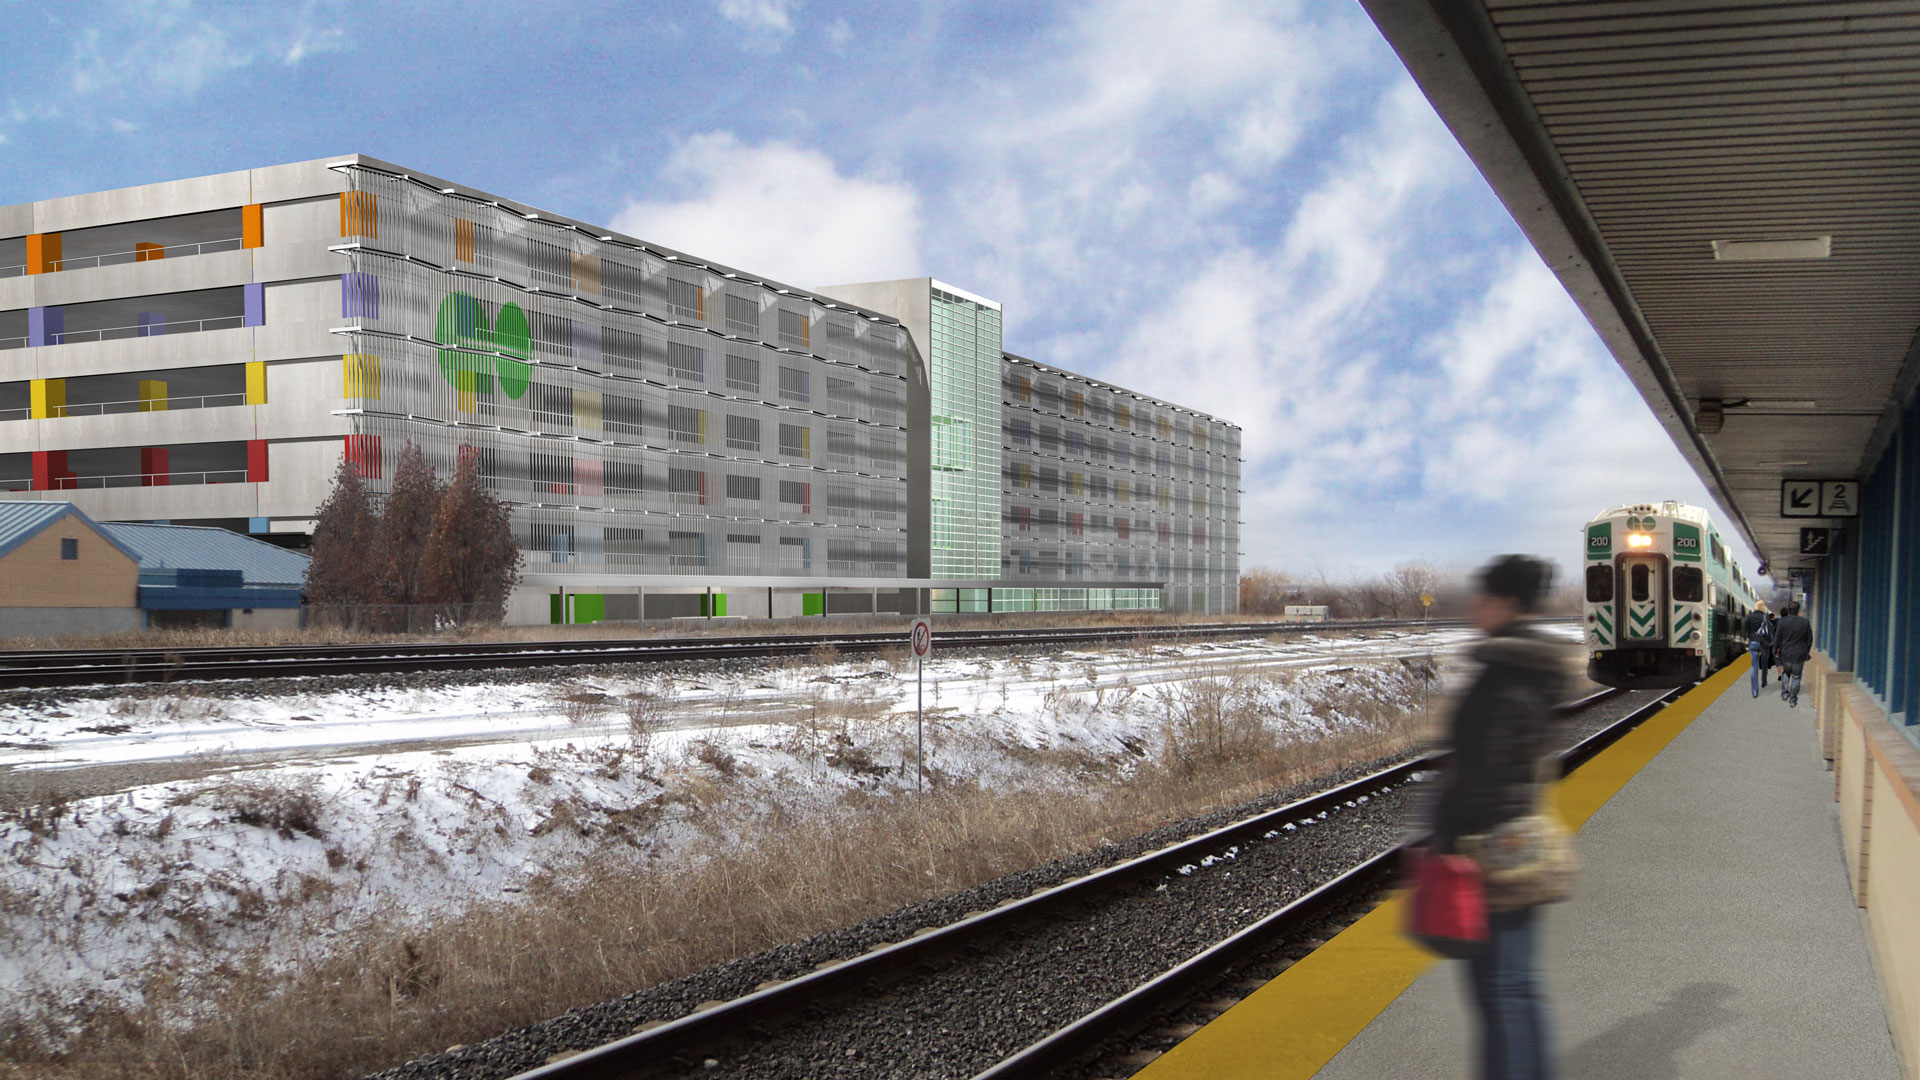 Exterior rendering of the railway platforms, showing the parking structure in the back